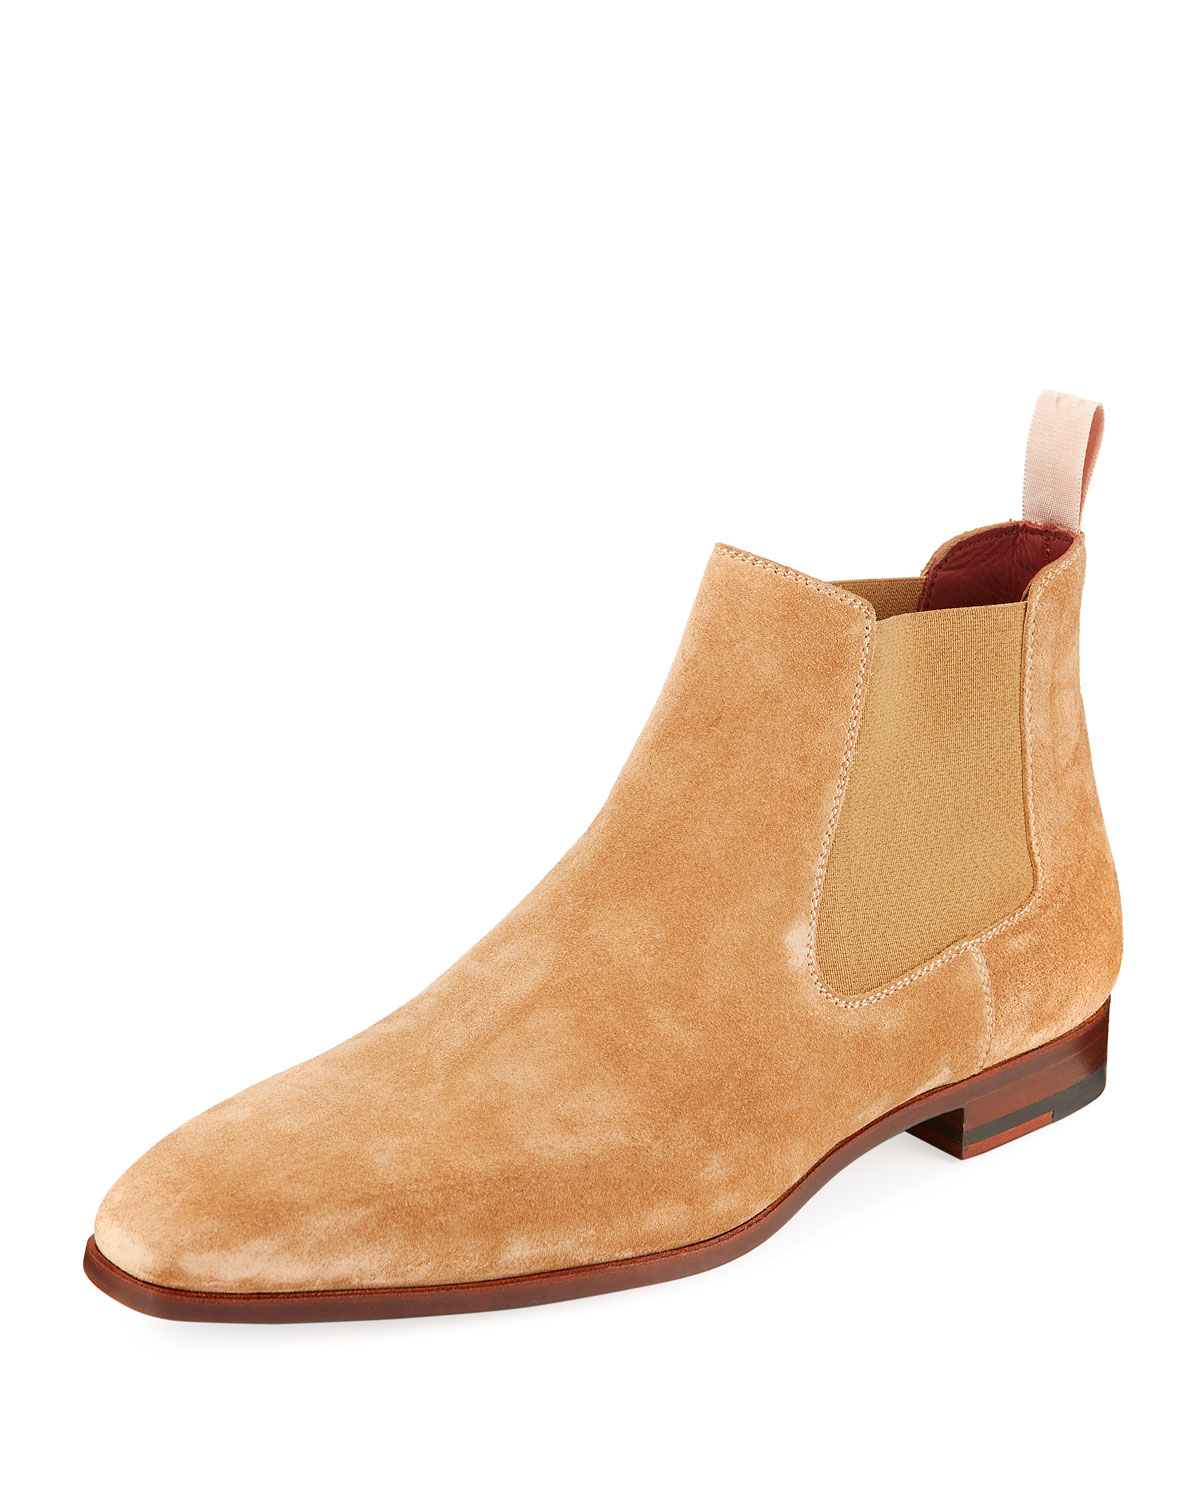 shop best sellers real deal online for sale Men's Suede Low Gored Chelsea Boots, Light Brown